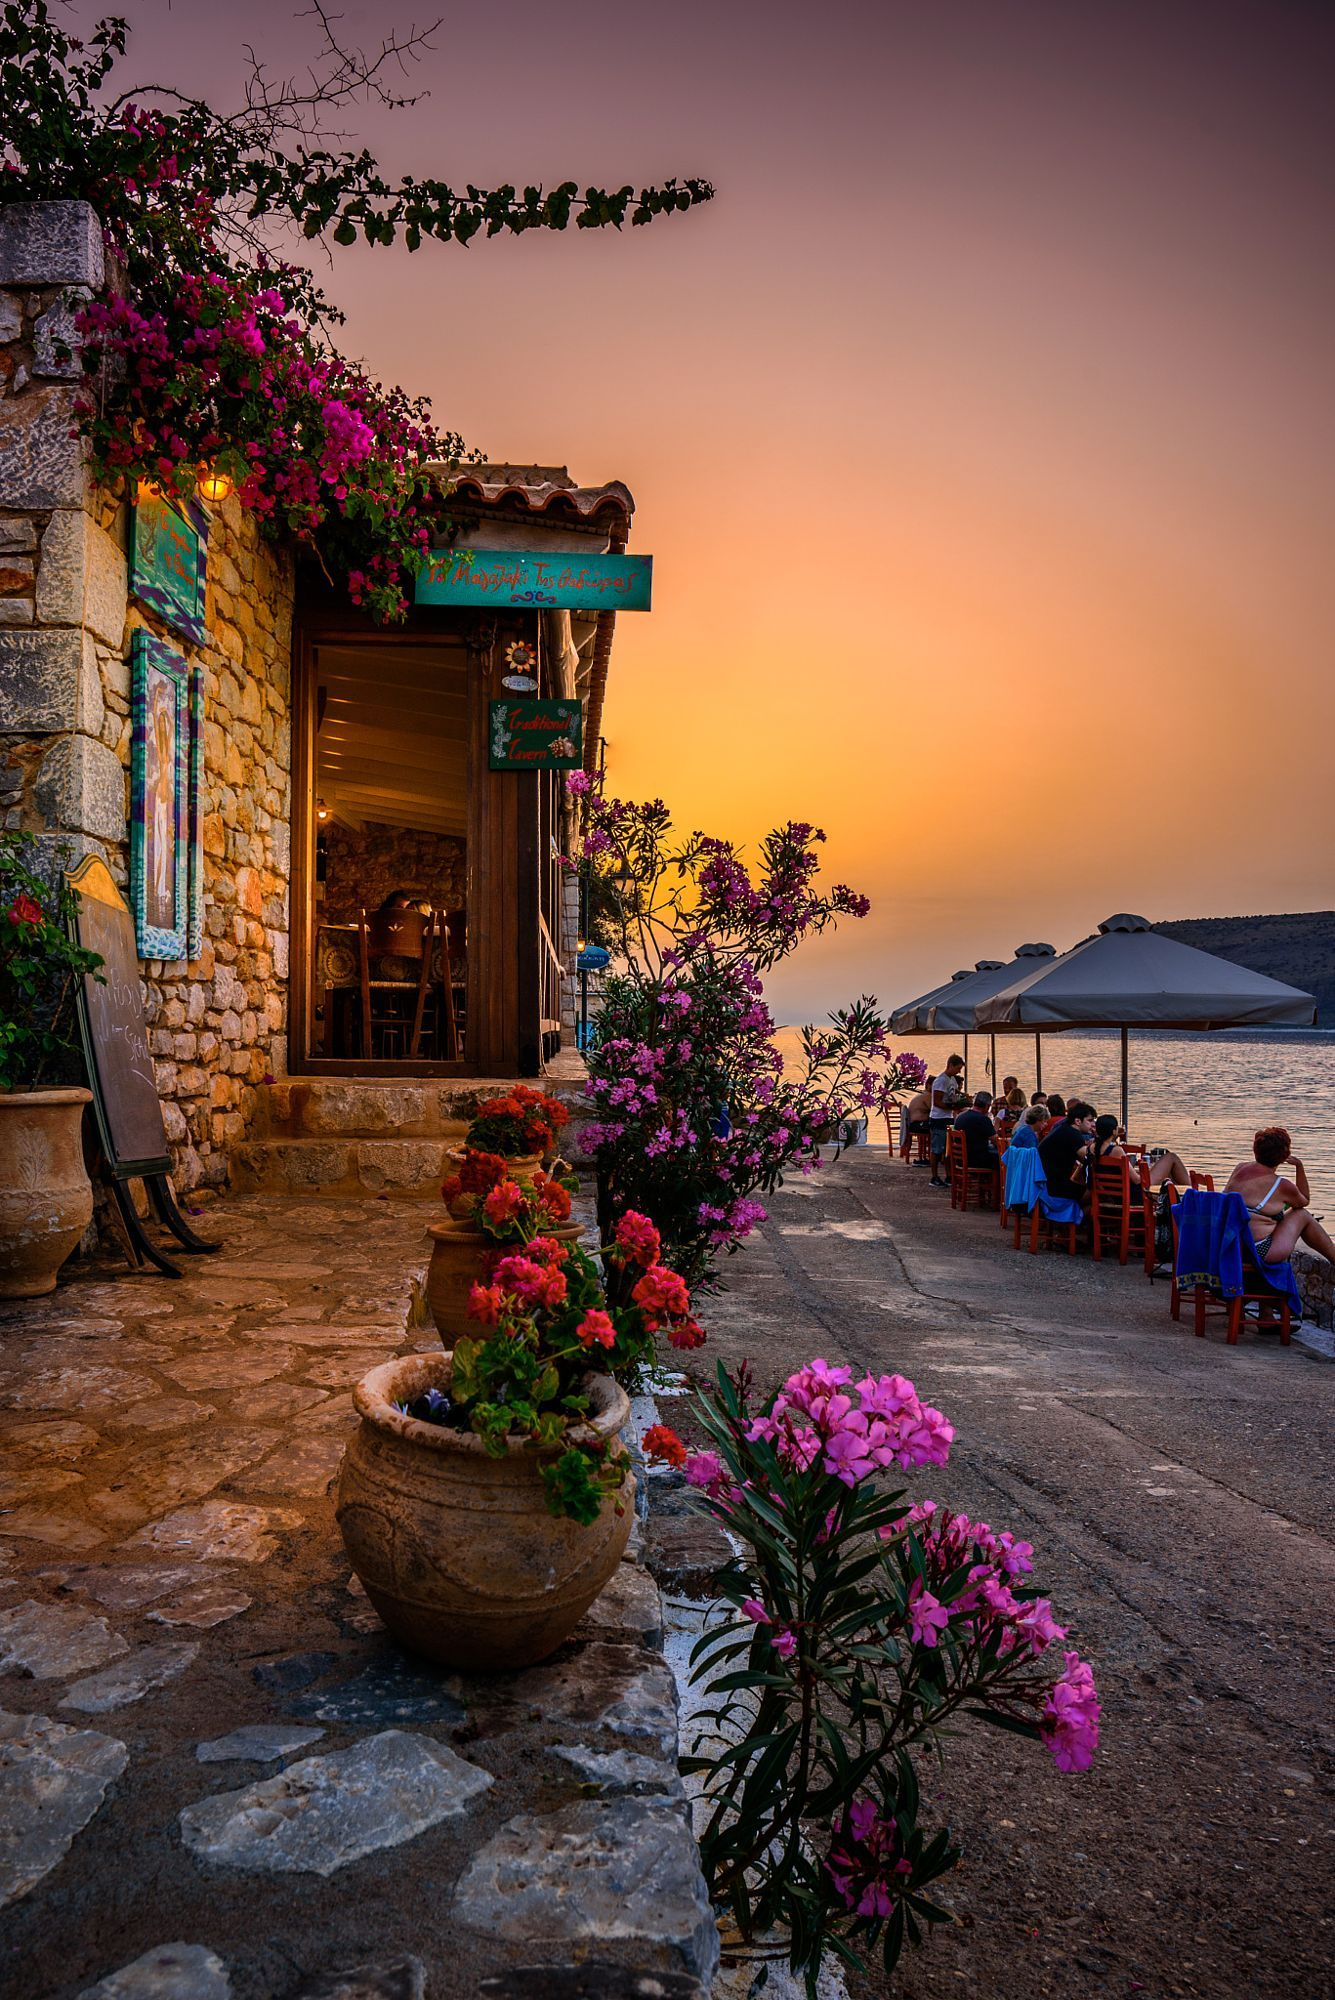 Taverna by the sea, Limeni, Mani, Greece | Beautiful places ...